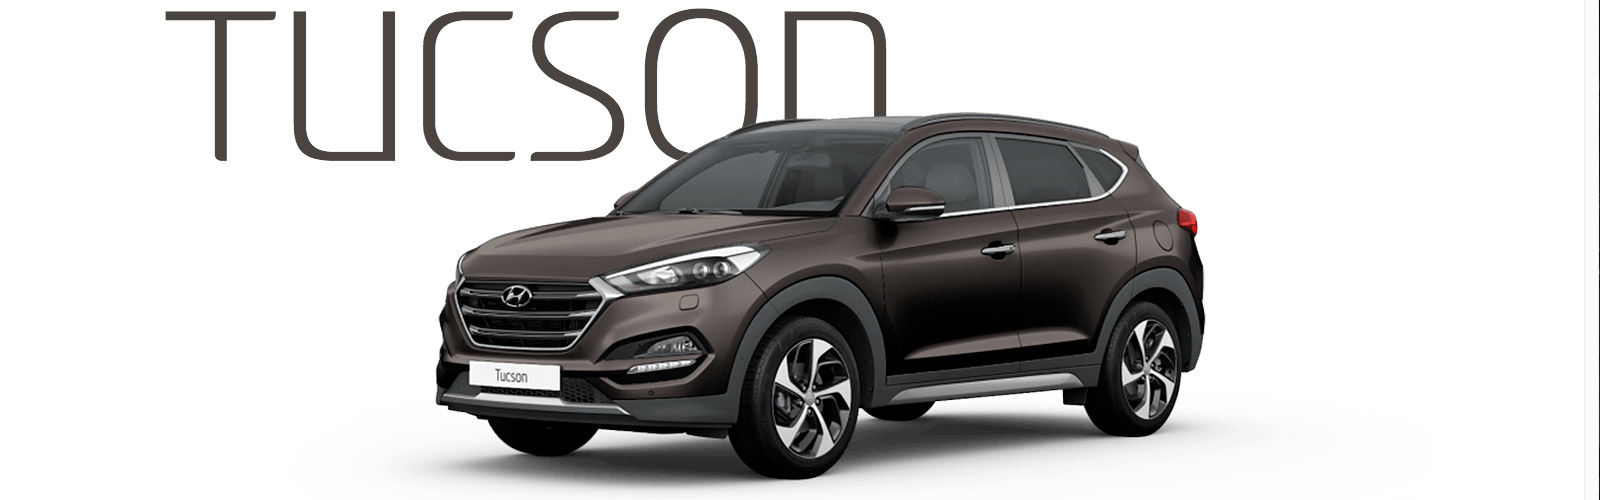 hyundai tucson colours guide and prices carwow. Black Bedroom Furniture Sets. Home Design Ideas